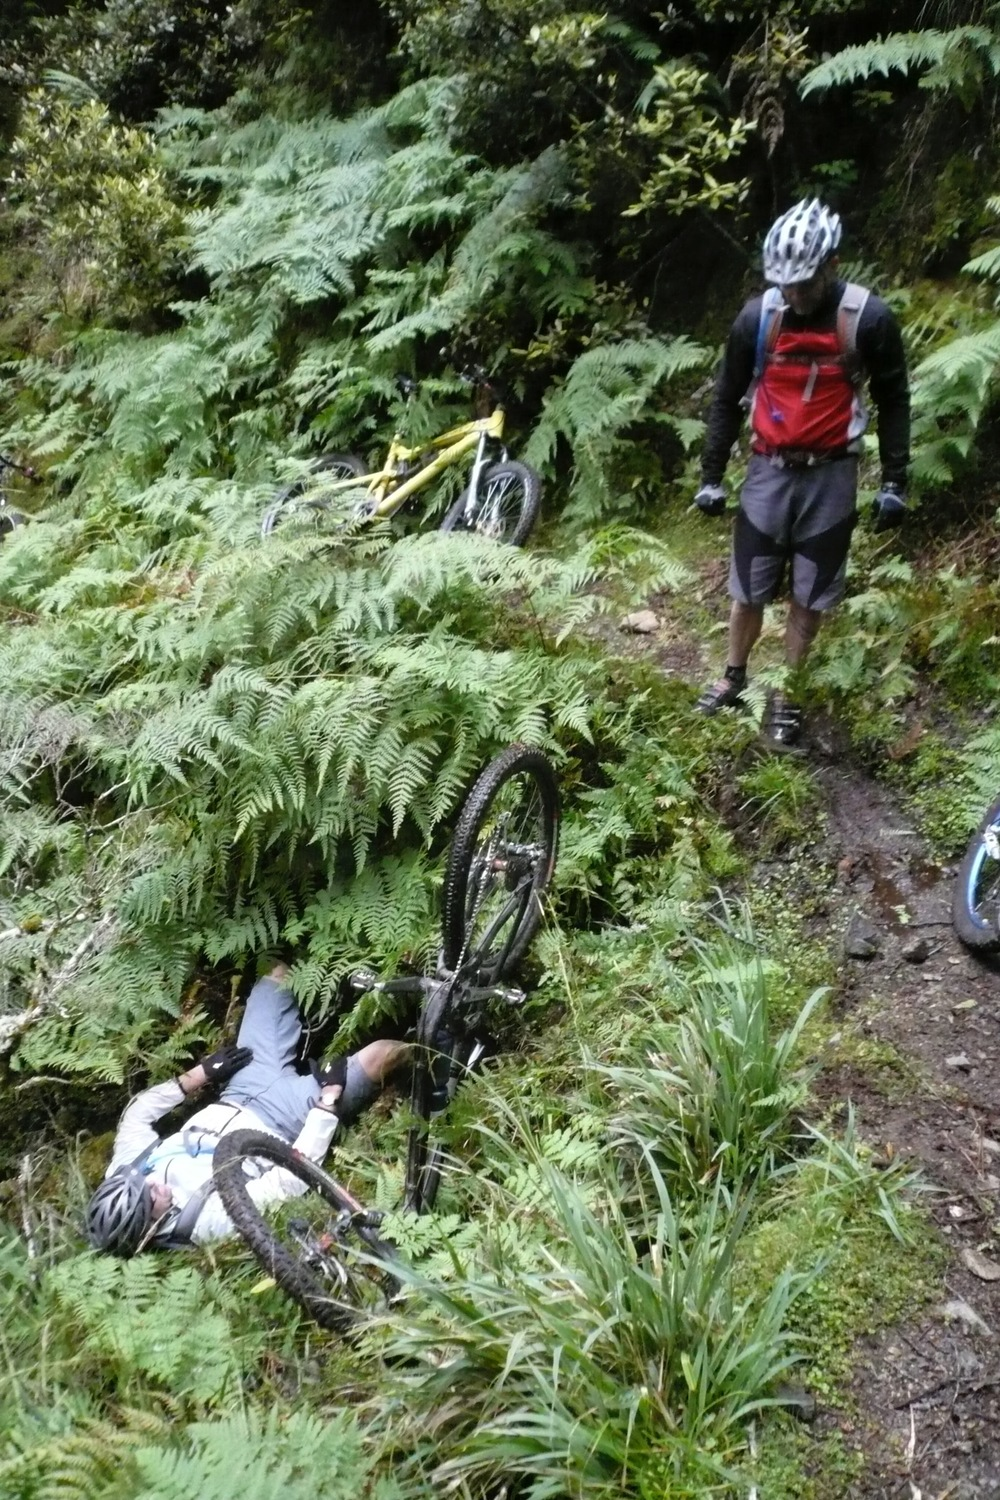 Some muppet falls into a hole at walking pace, Ti Iringa track.